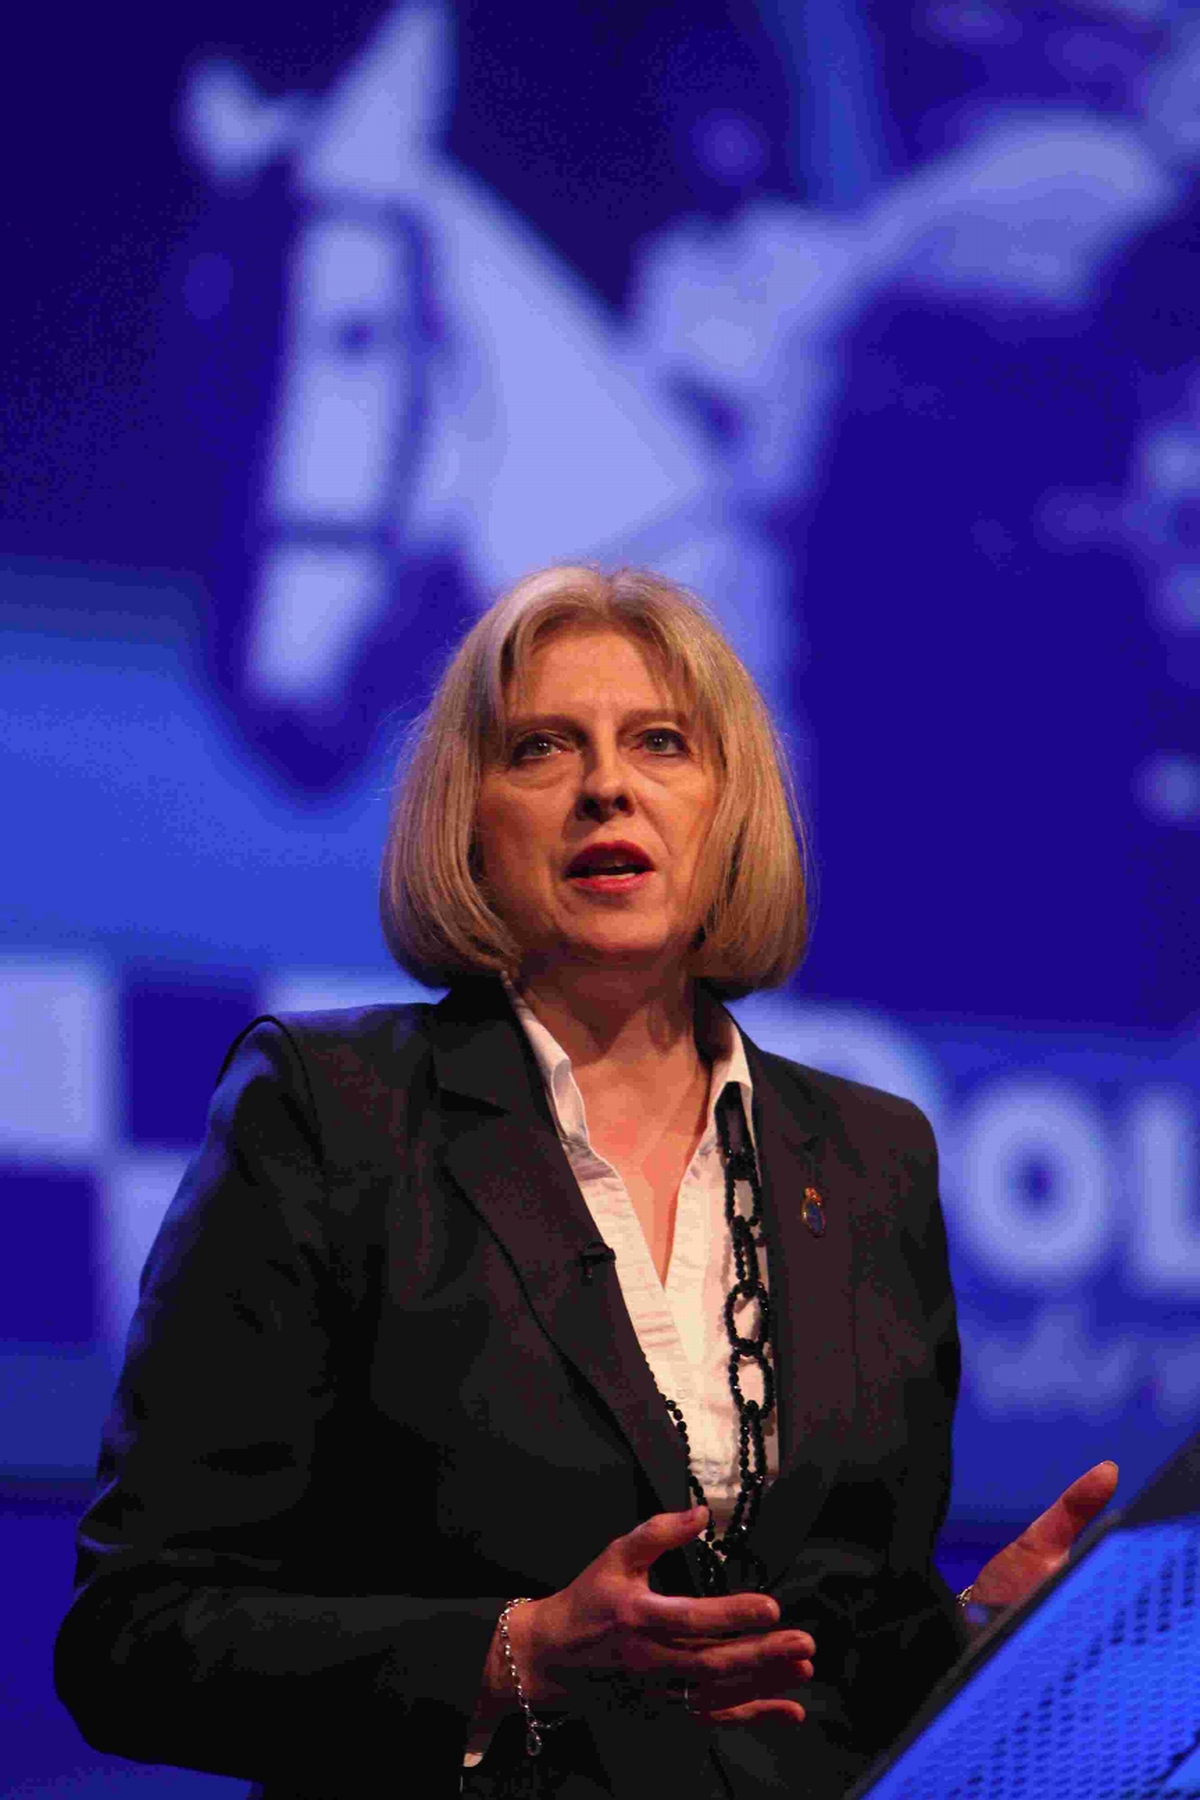 Home Secretary praises Wiltshire Police for 'Stop and Search' reforms